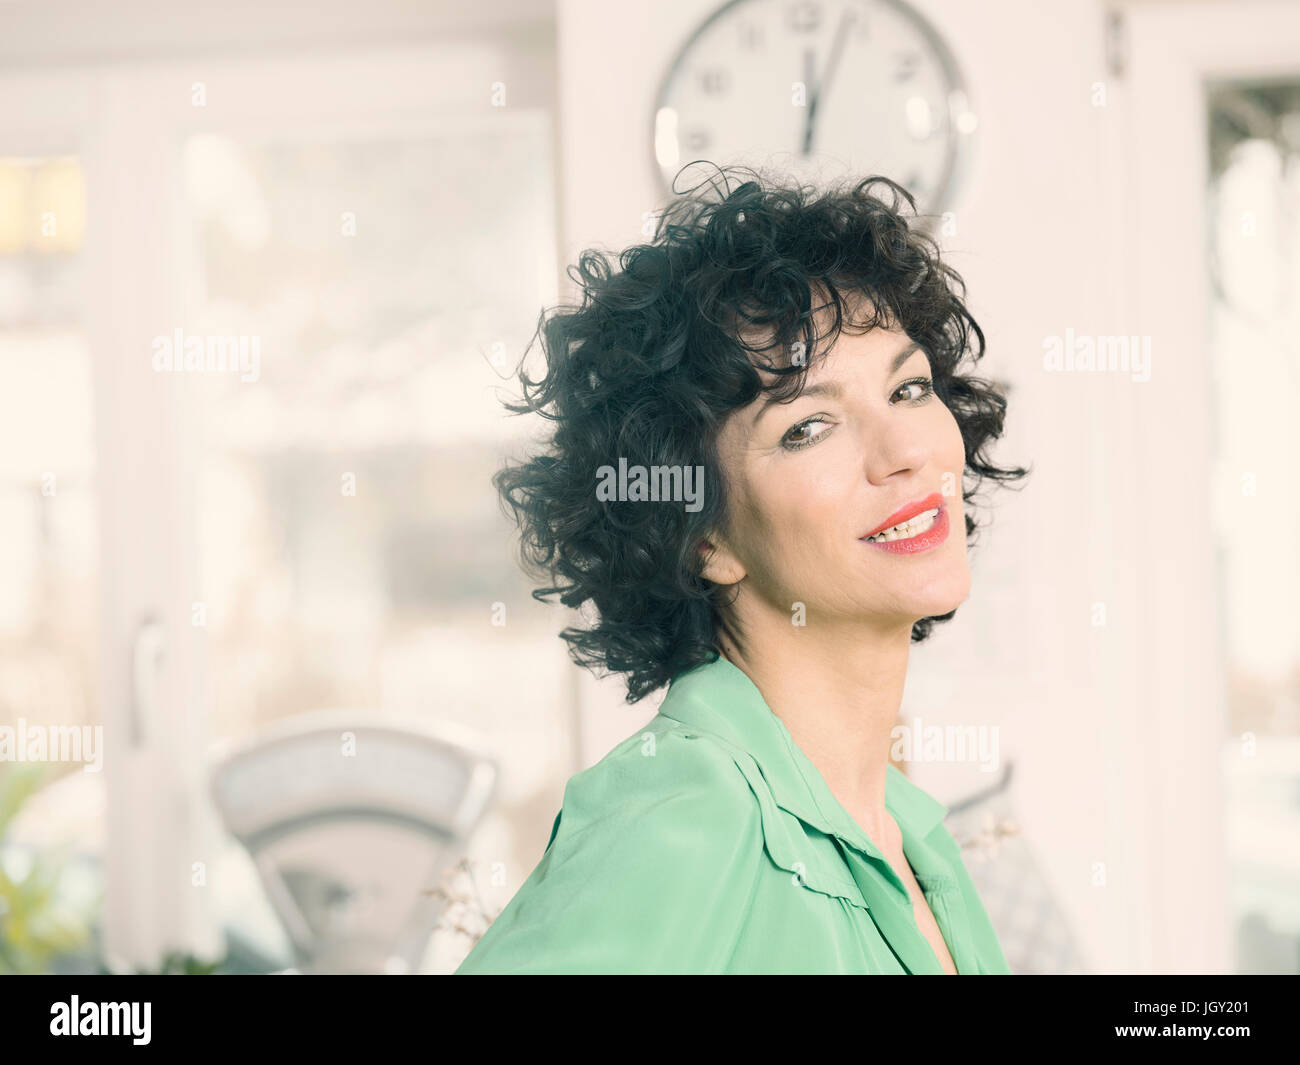 Portrait of curly haired woman looking at camera smiling - Stock Image